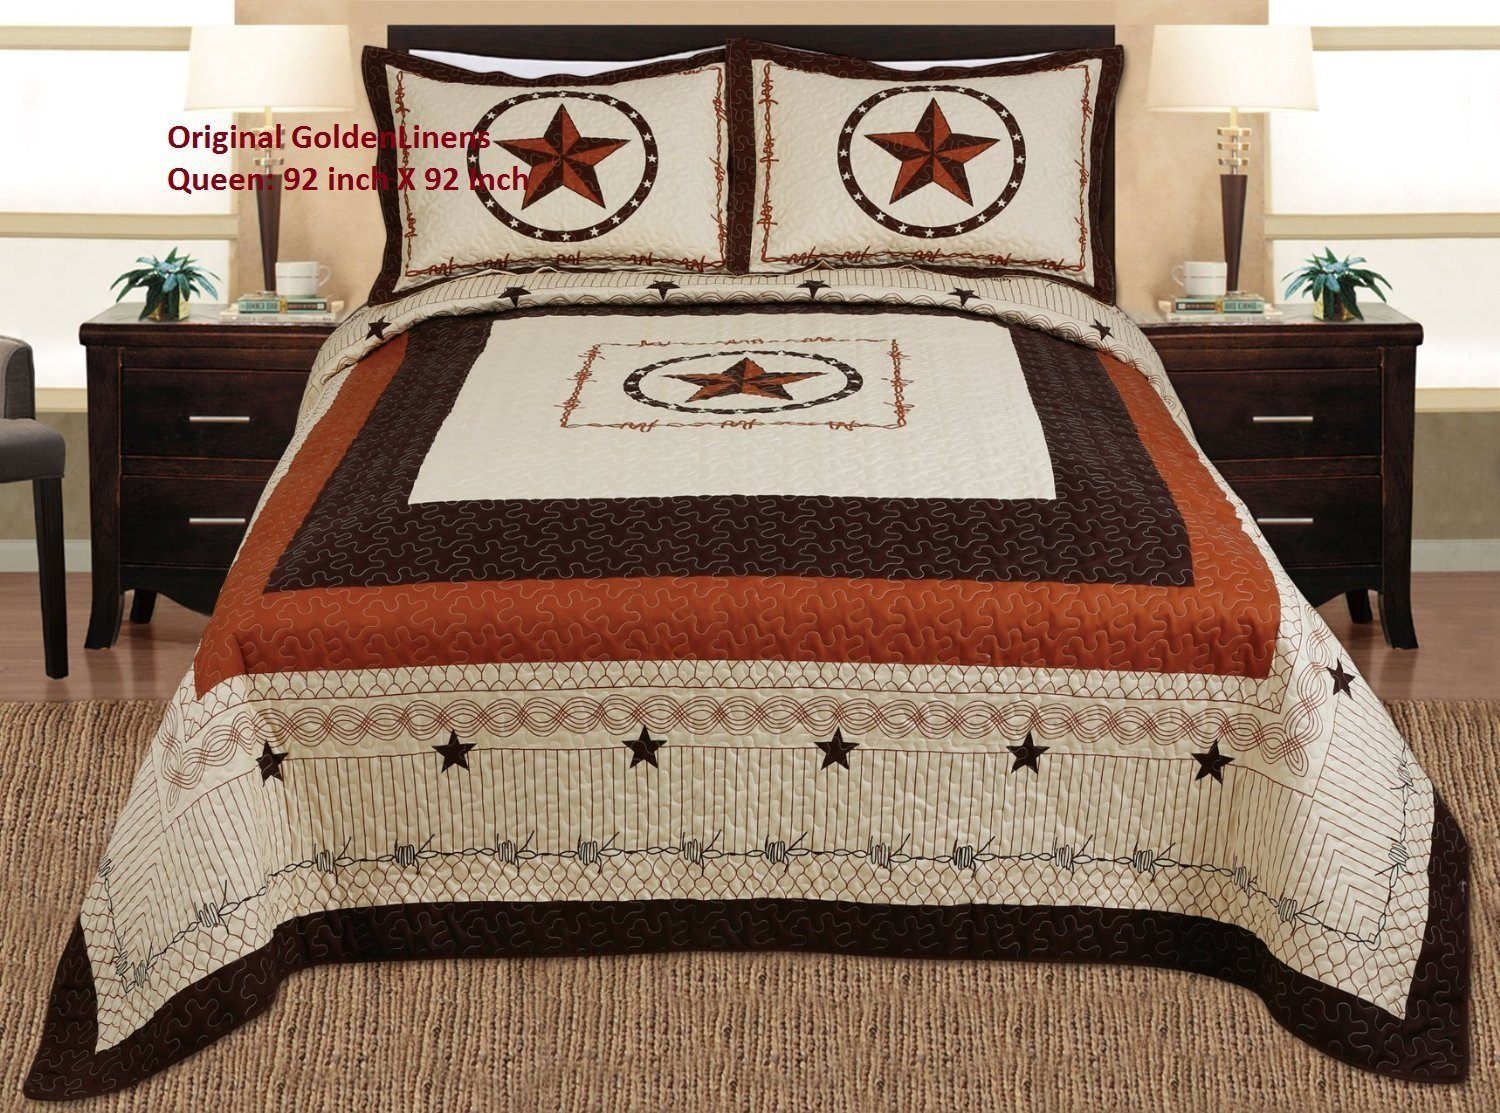 3-piece Western Lone Star Barb Wire Cabin / Lodge Quilt Bedspread Coverlet Set Full / Queen Size Beige, Brown, Black